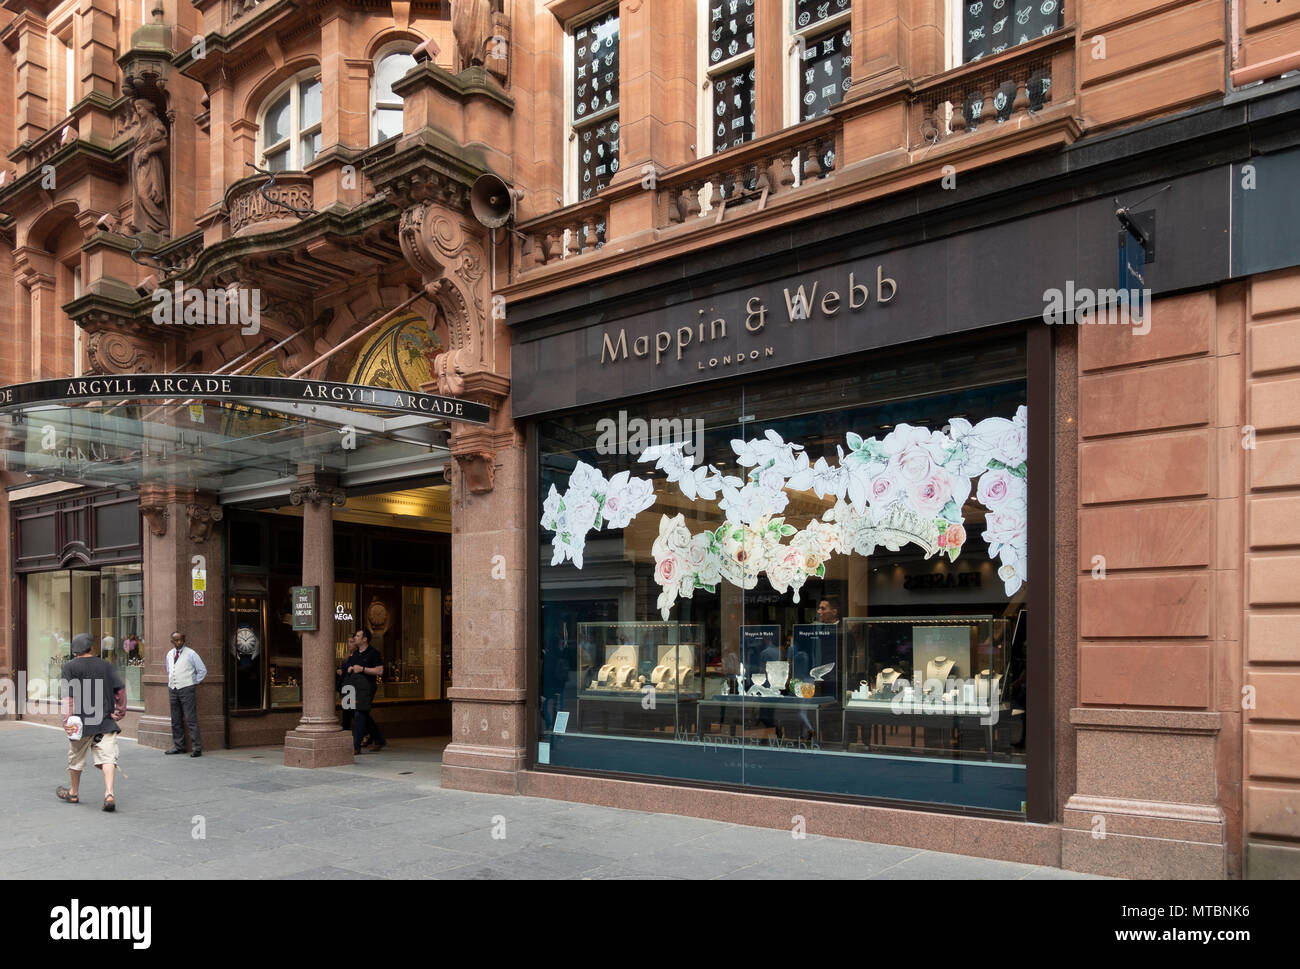 Mappin and Webb, an upmarket jeweller's at the entrance of the Argyle Arcade in Buchanan Street, Glasgow, with Omega at the other side of the entrance Stock Photo